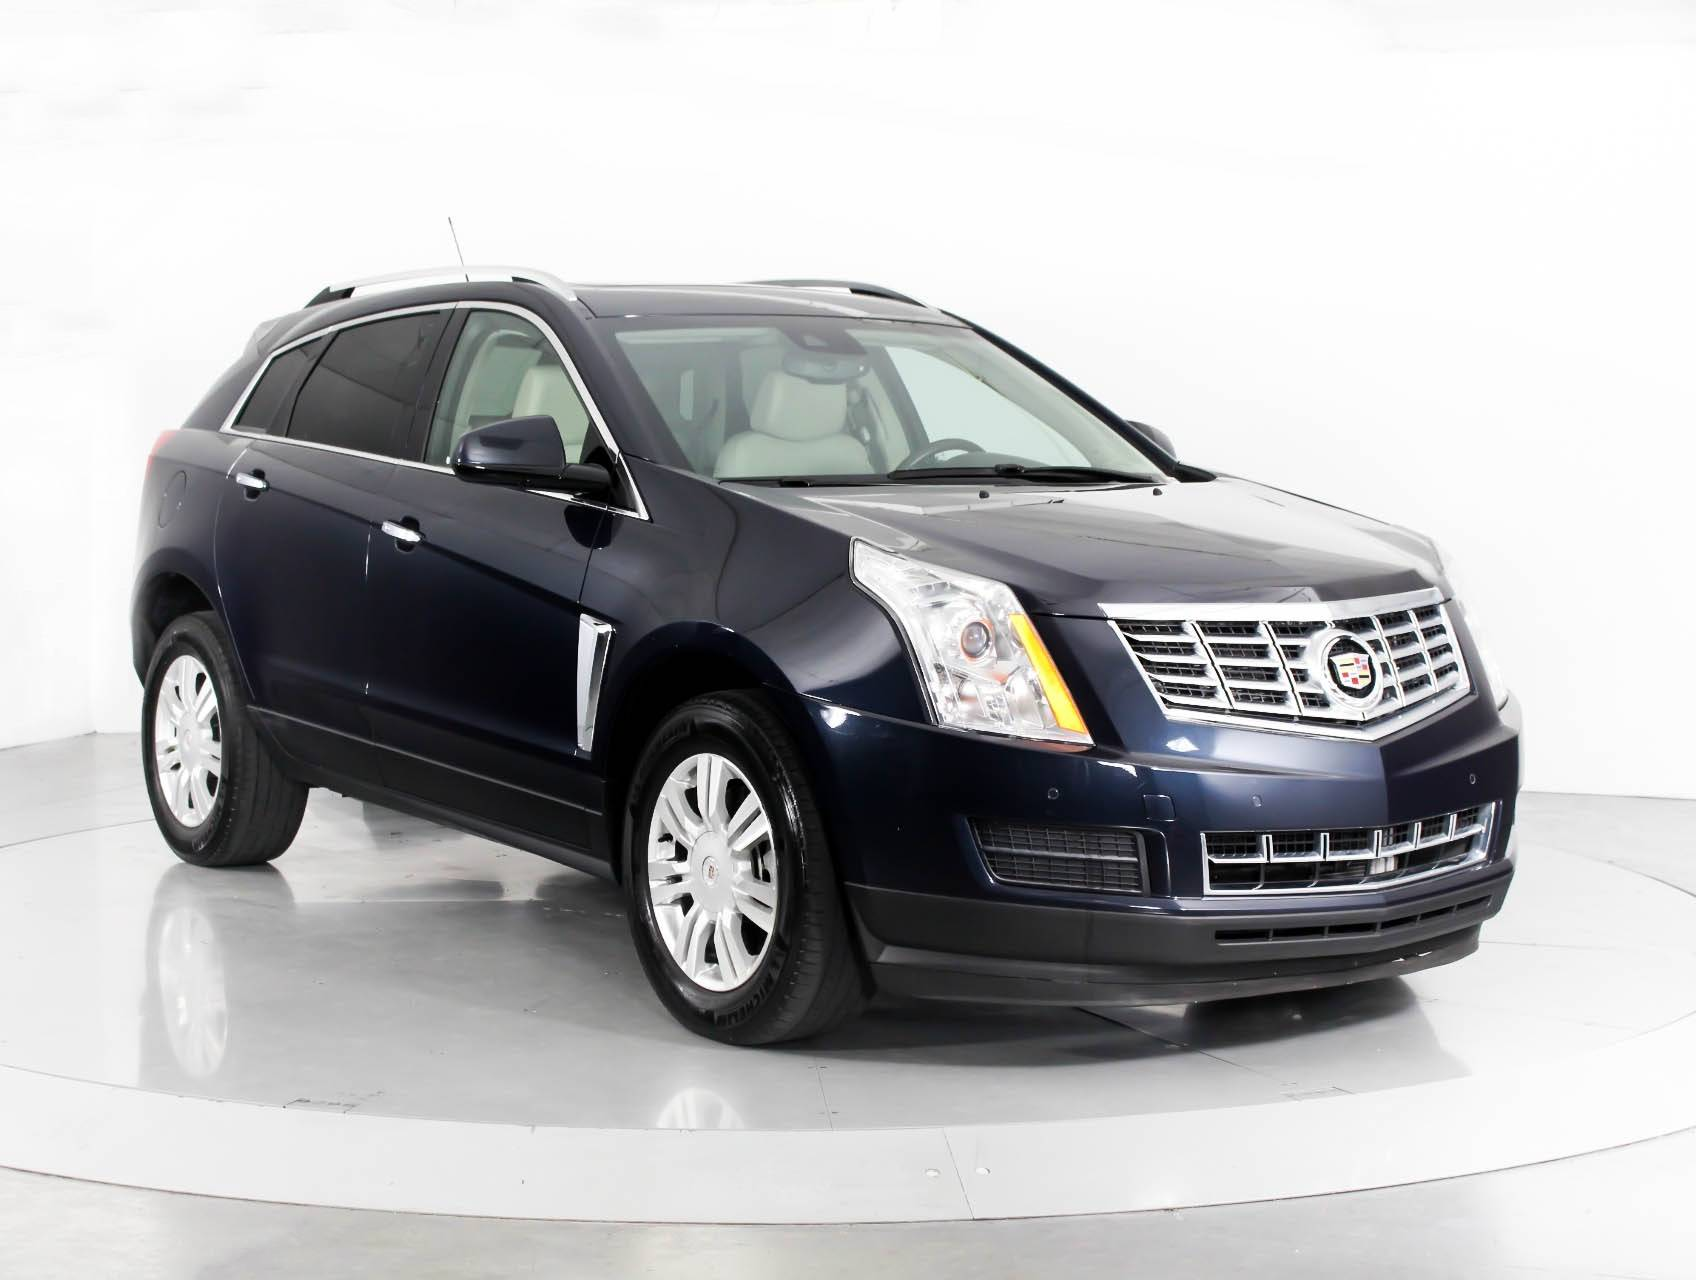 Used 2015 CADILLAC SRX LUXURY SUV for sale in MIAMI FL